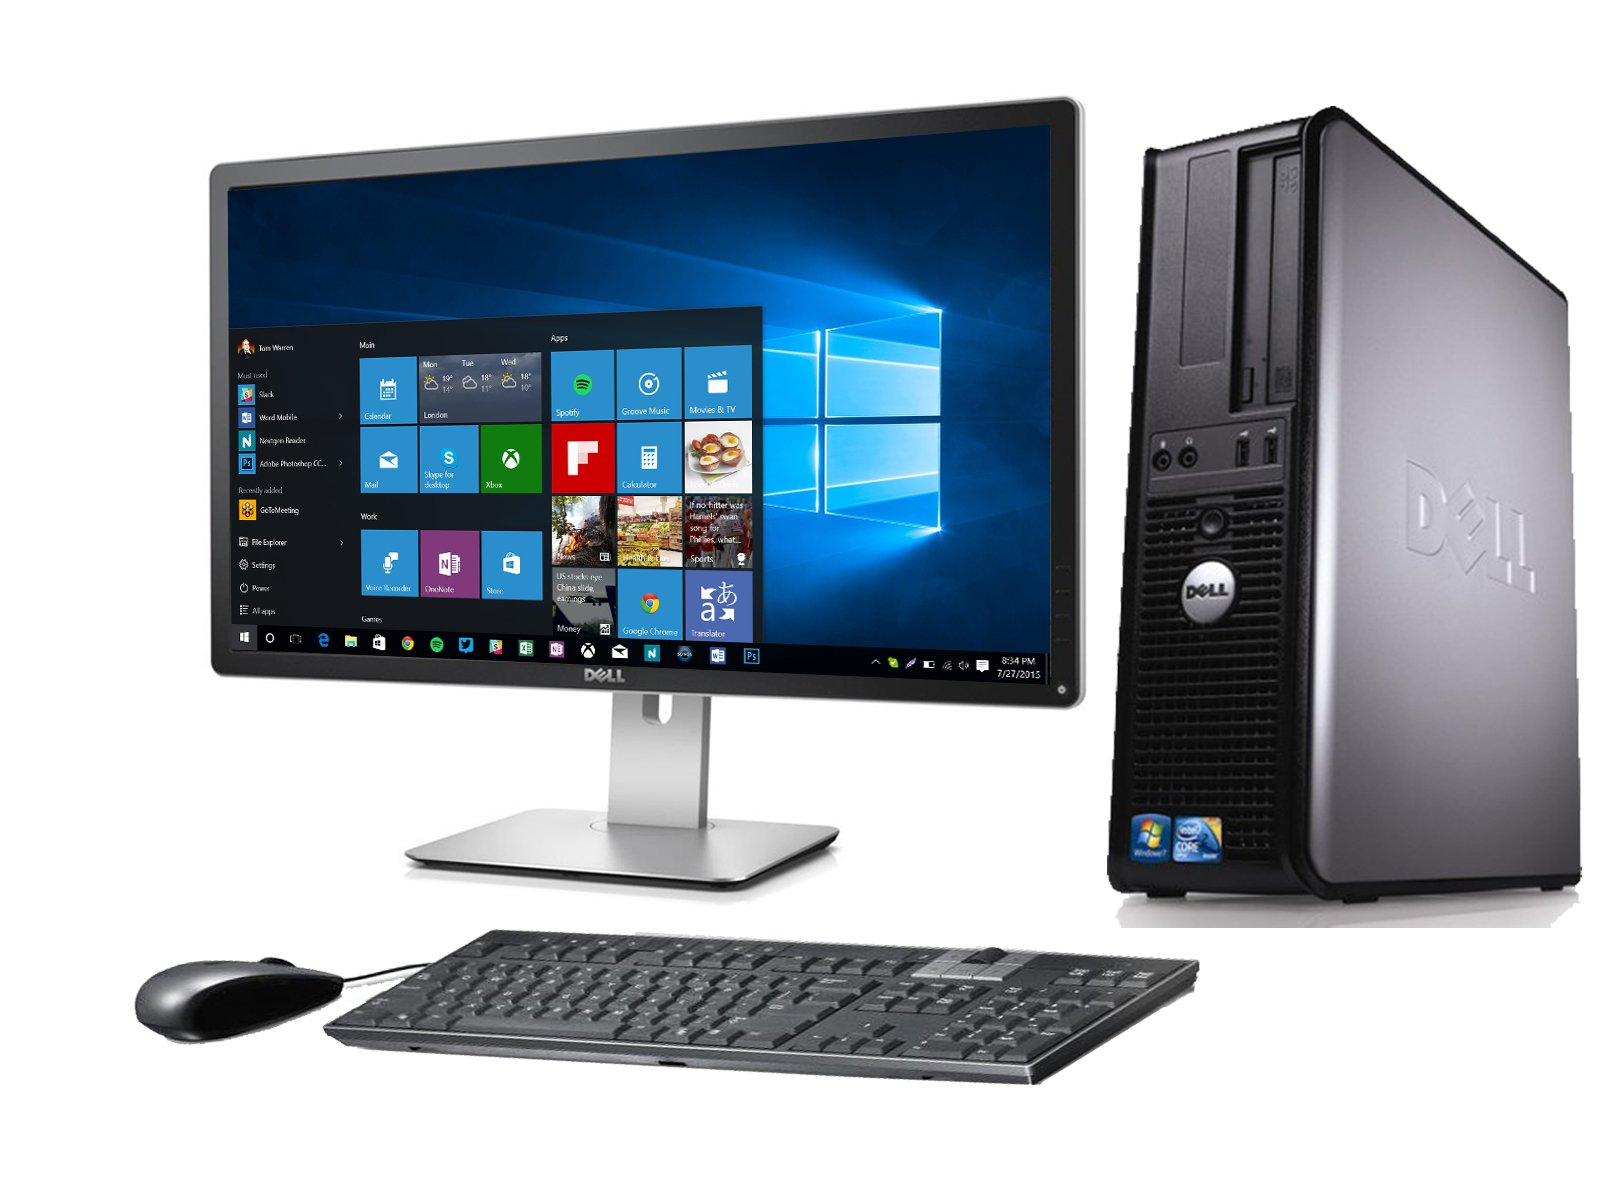 DELL OPTIPLEX 780 DESKTOP CORE 2 QUAD 2.4GHZ 4GB 160GB 22″ MONITOR WINDOWS 10 64BIT (Certified Refurbished)